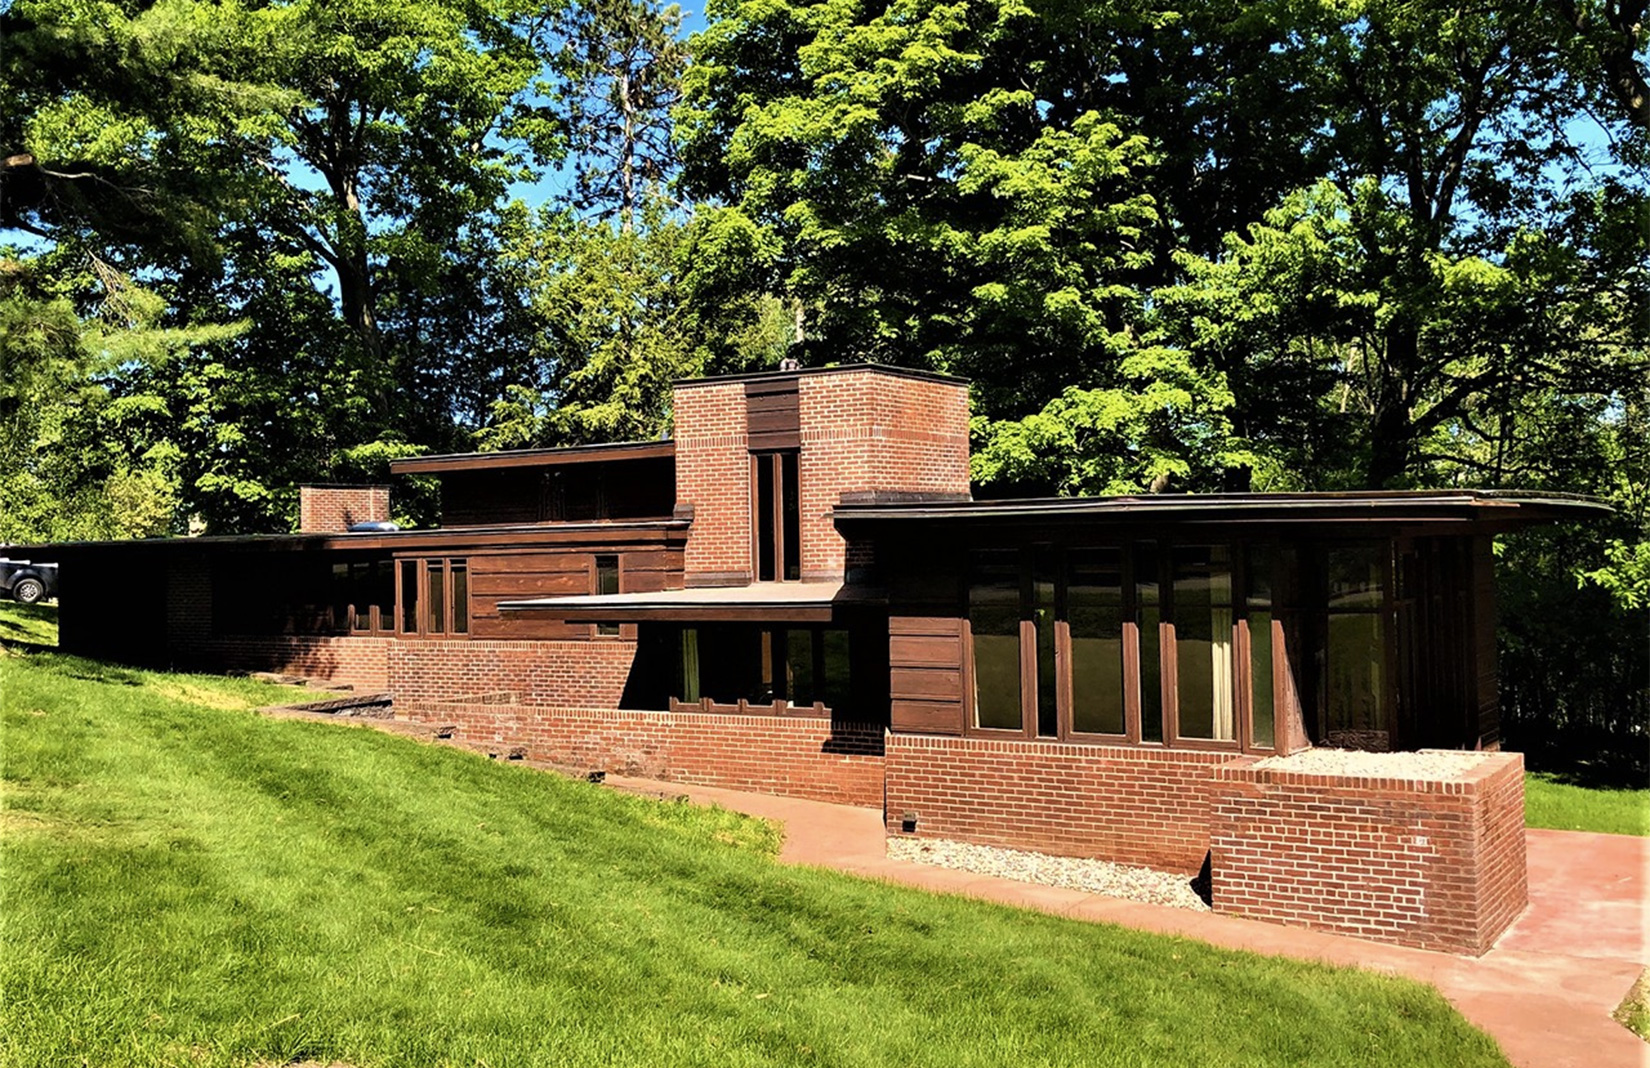 Charles Manson House by Frank Lloyd Wright for sale in Wisconsin